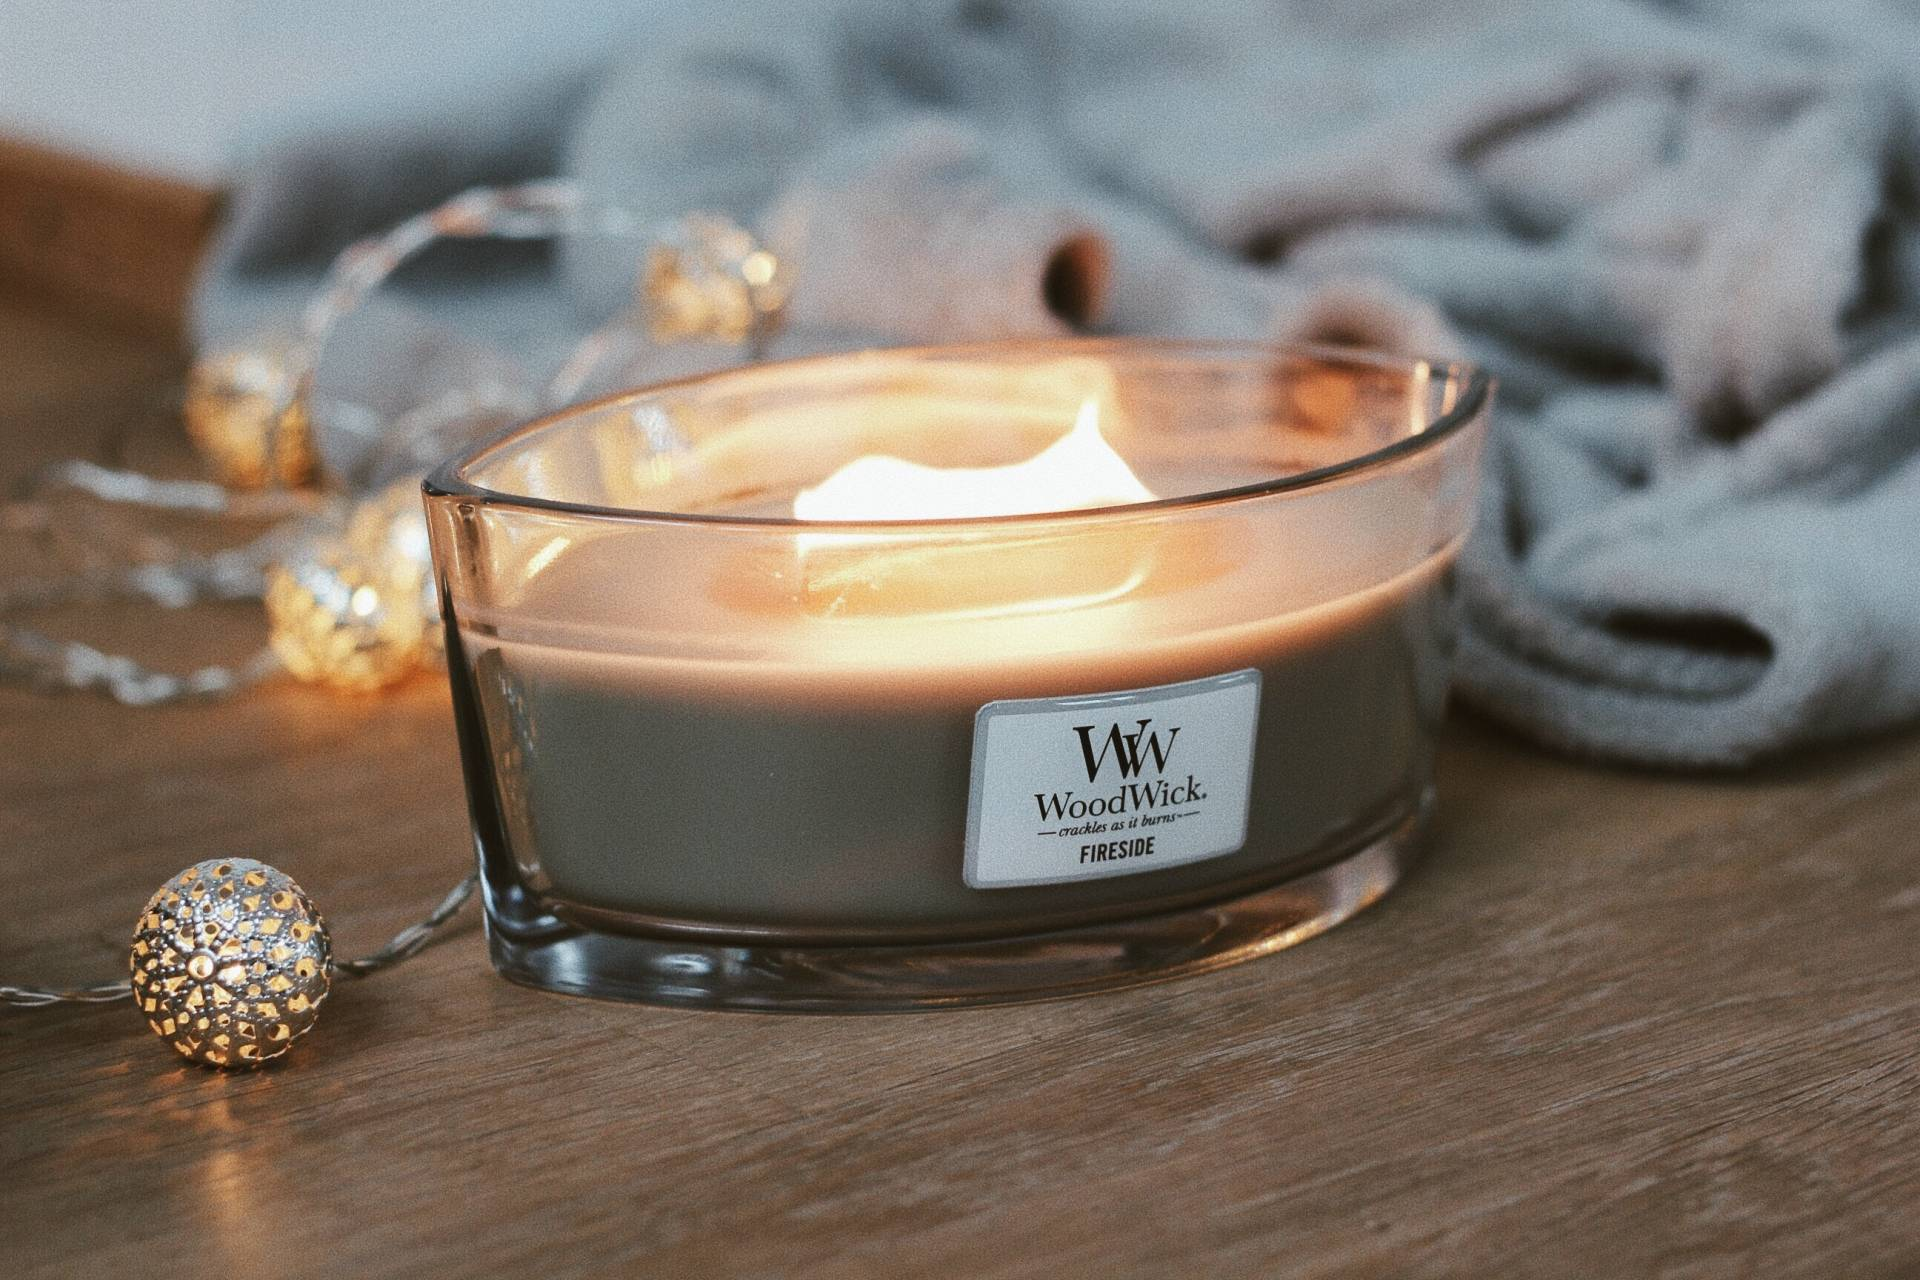 Cosy moments with WoodWick © Yolisa van den Eeden - www.cestyoli.com